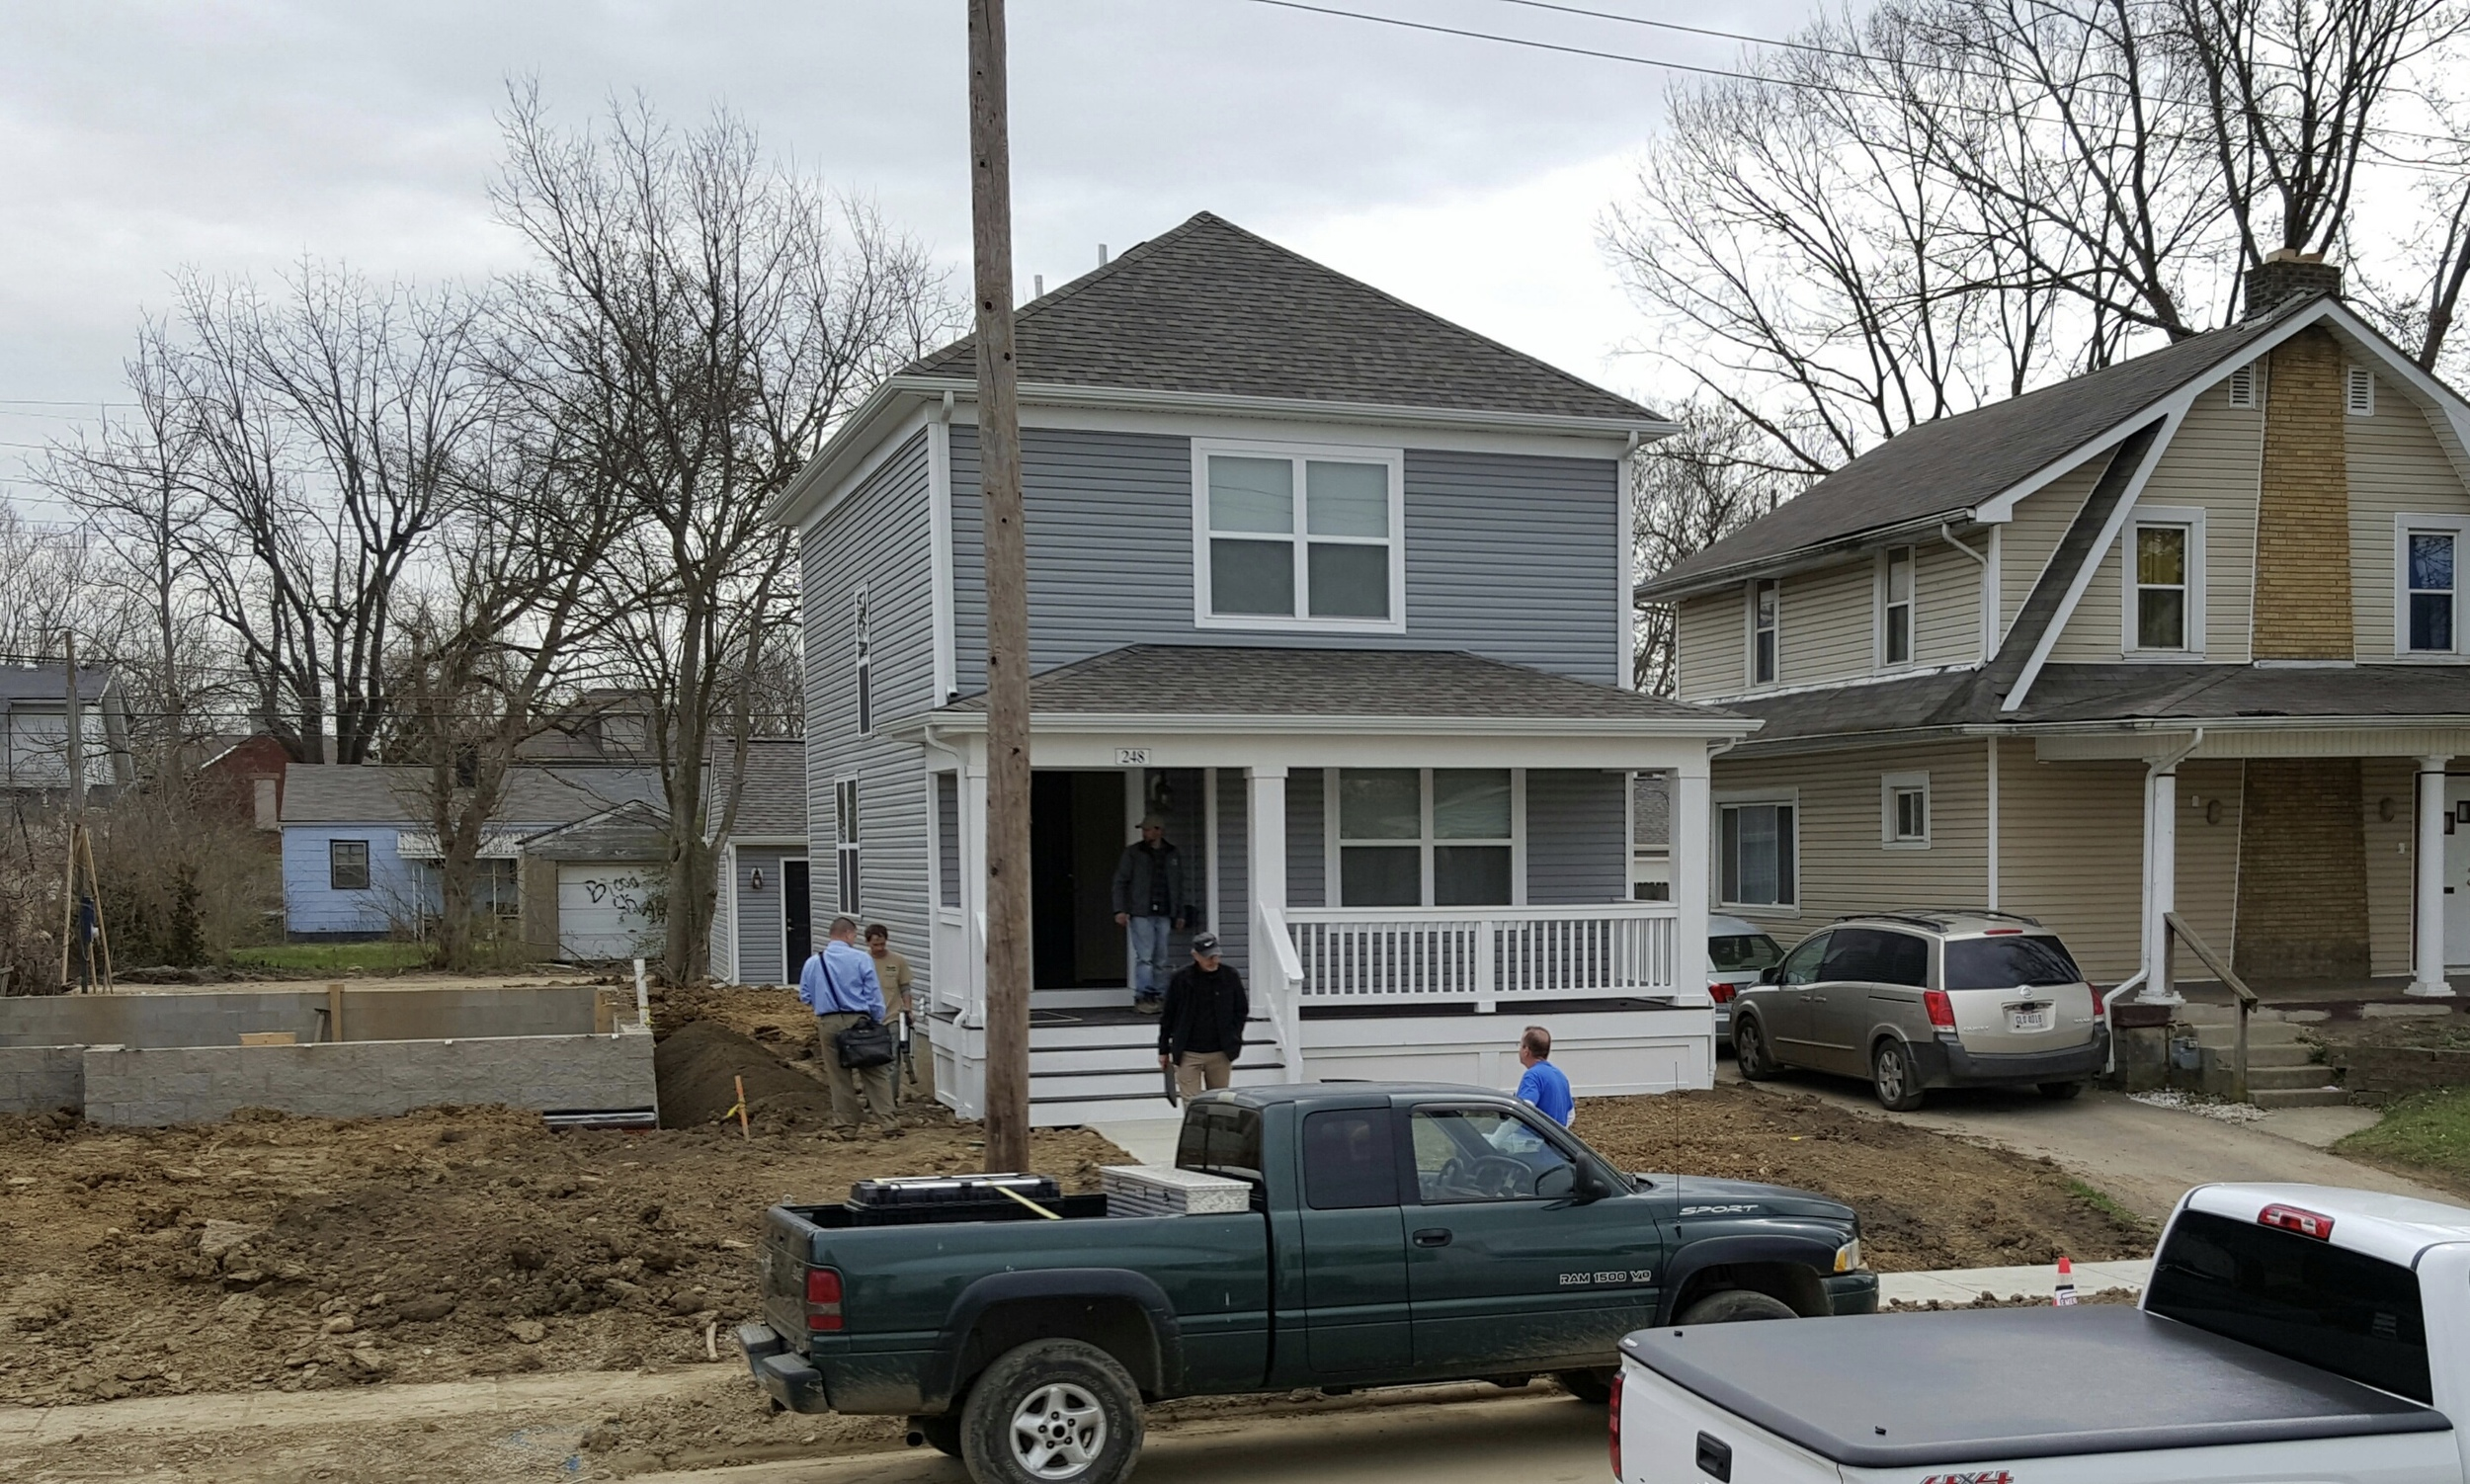 Construction so far involves the 'Elizabeth' model, pictured here on Wheatland Avenue.